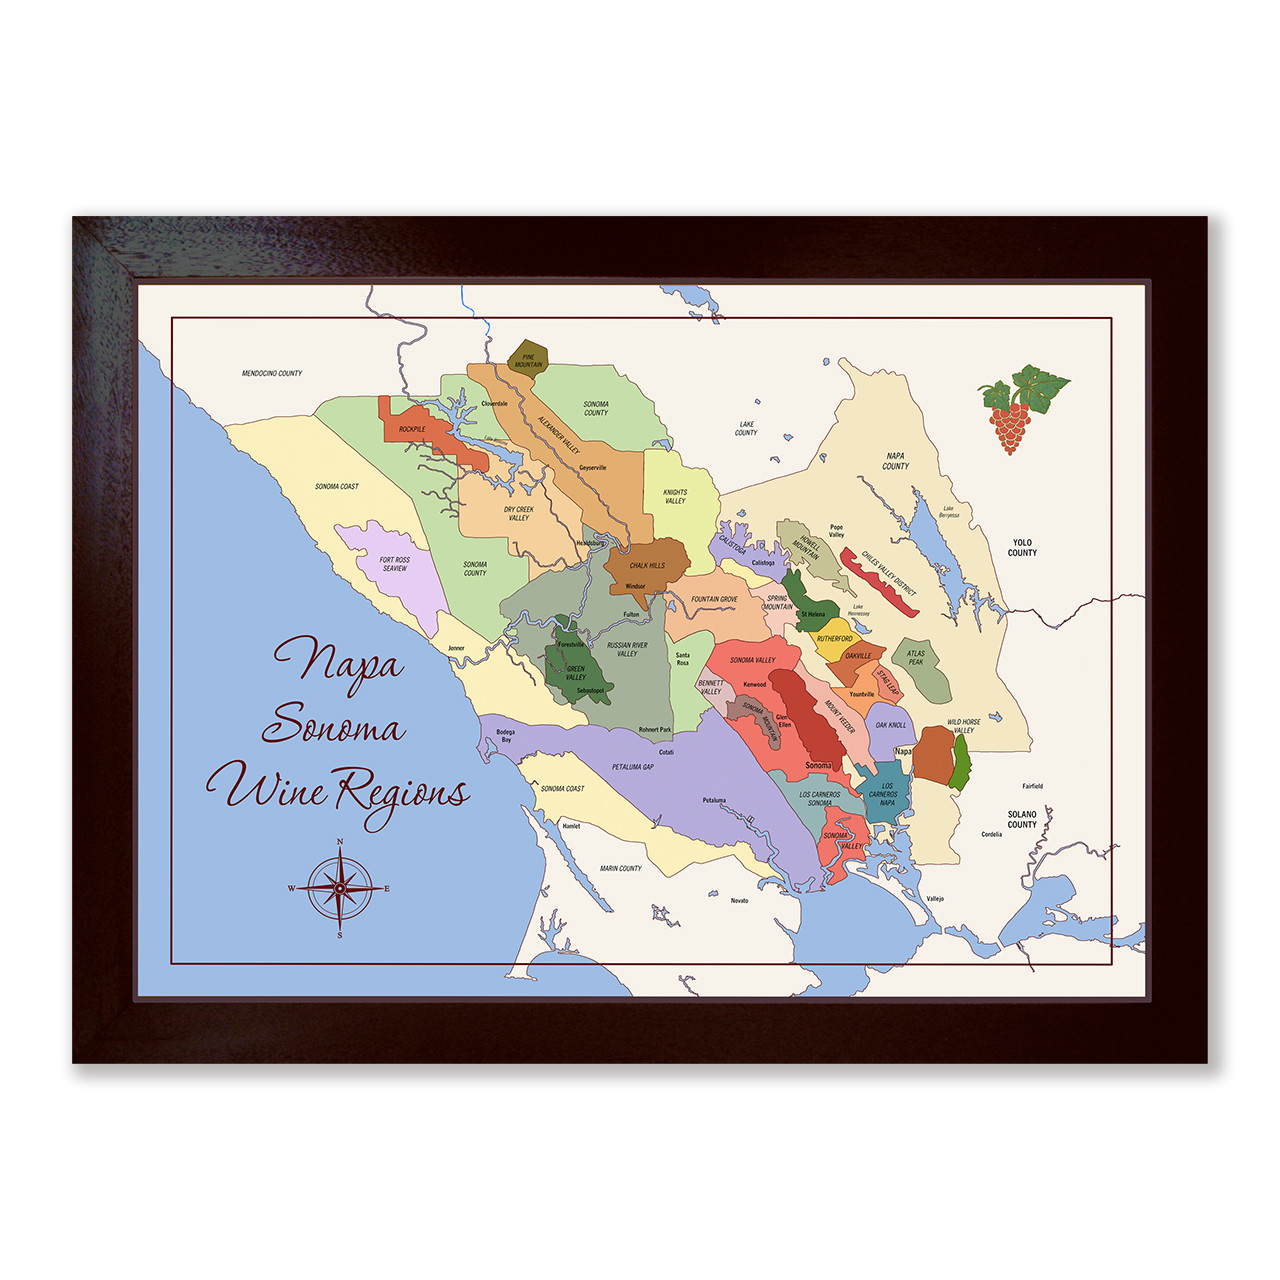 Napa Sonoma Wine Map personalizable giclee canvas